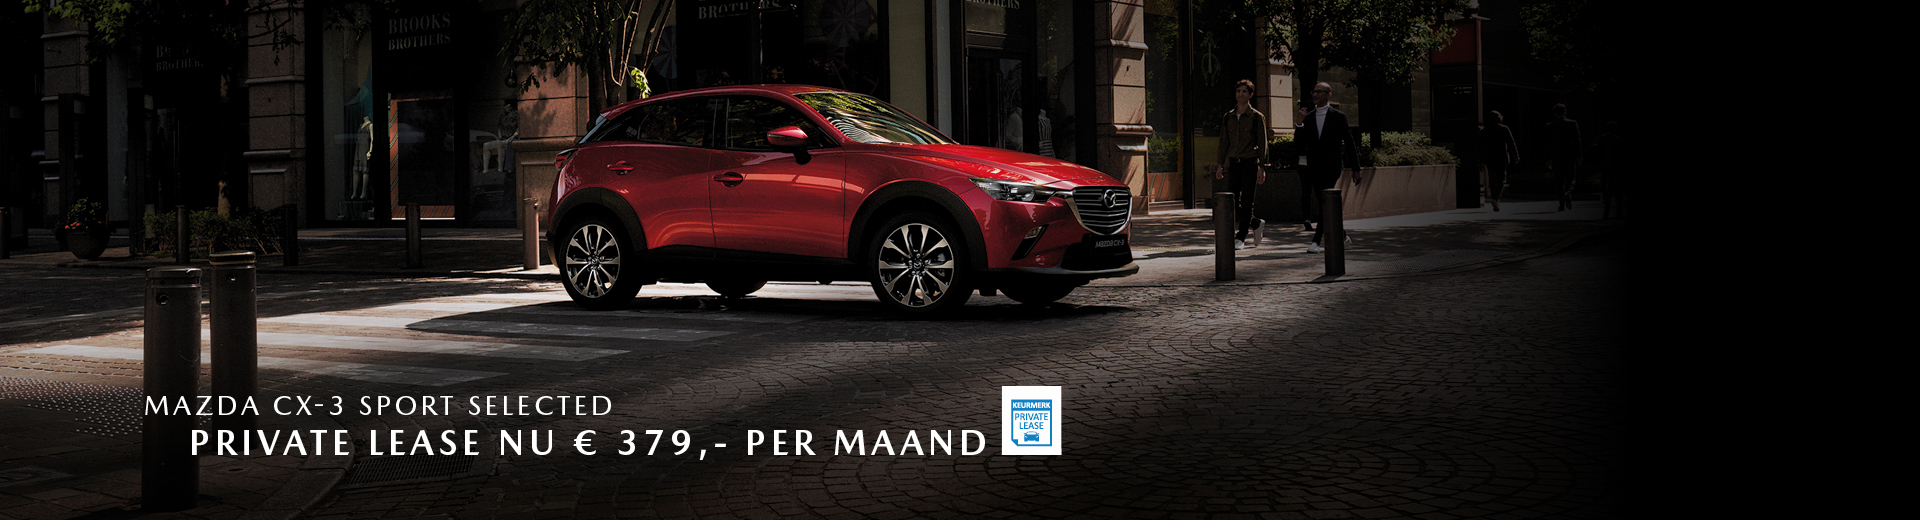 180854 Mazda Nieuwe stijl 2019_Banner 1920x520px_Private lease_Mazda CX-3 [opmaak 01]